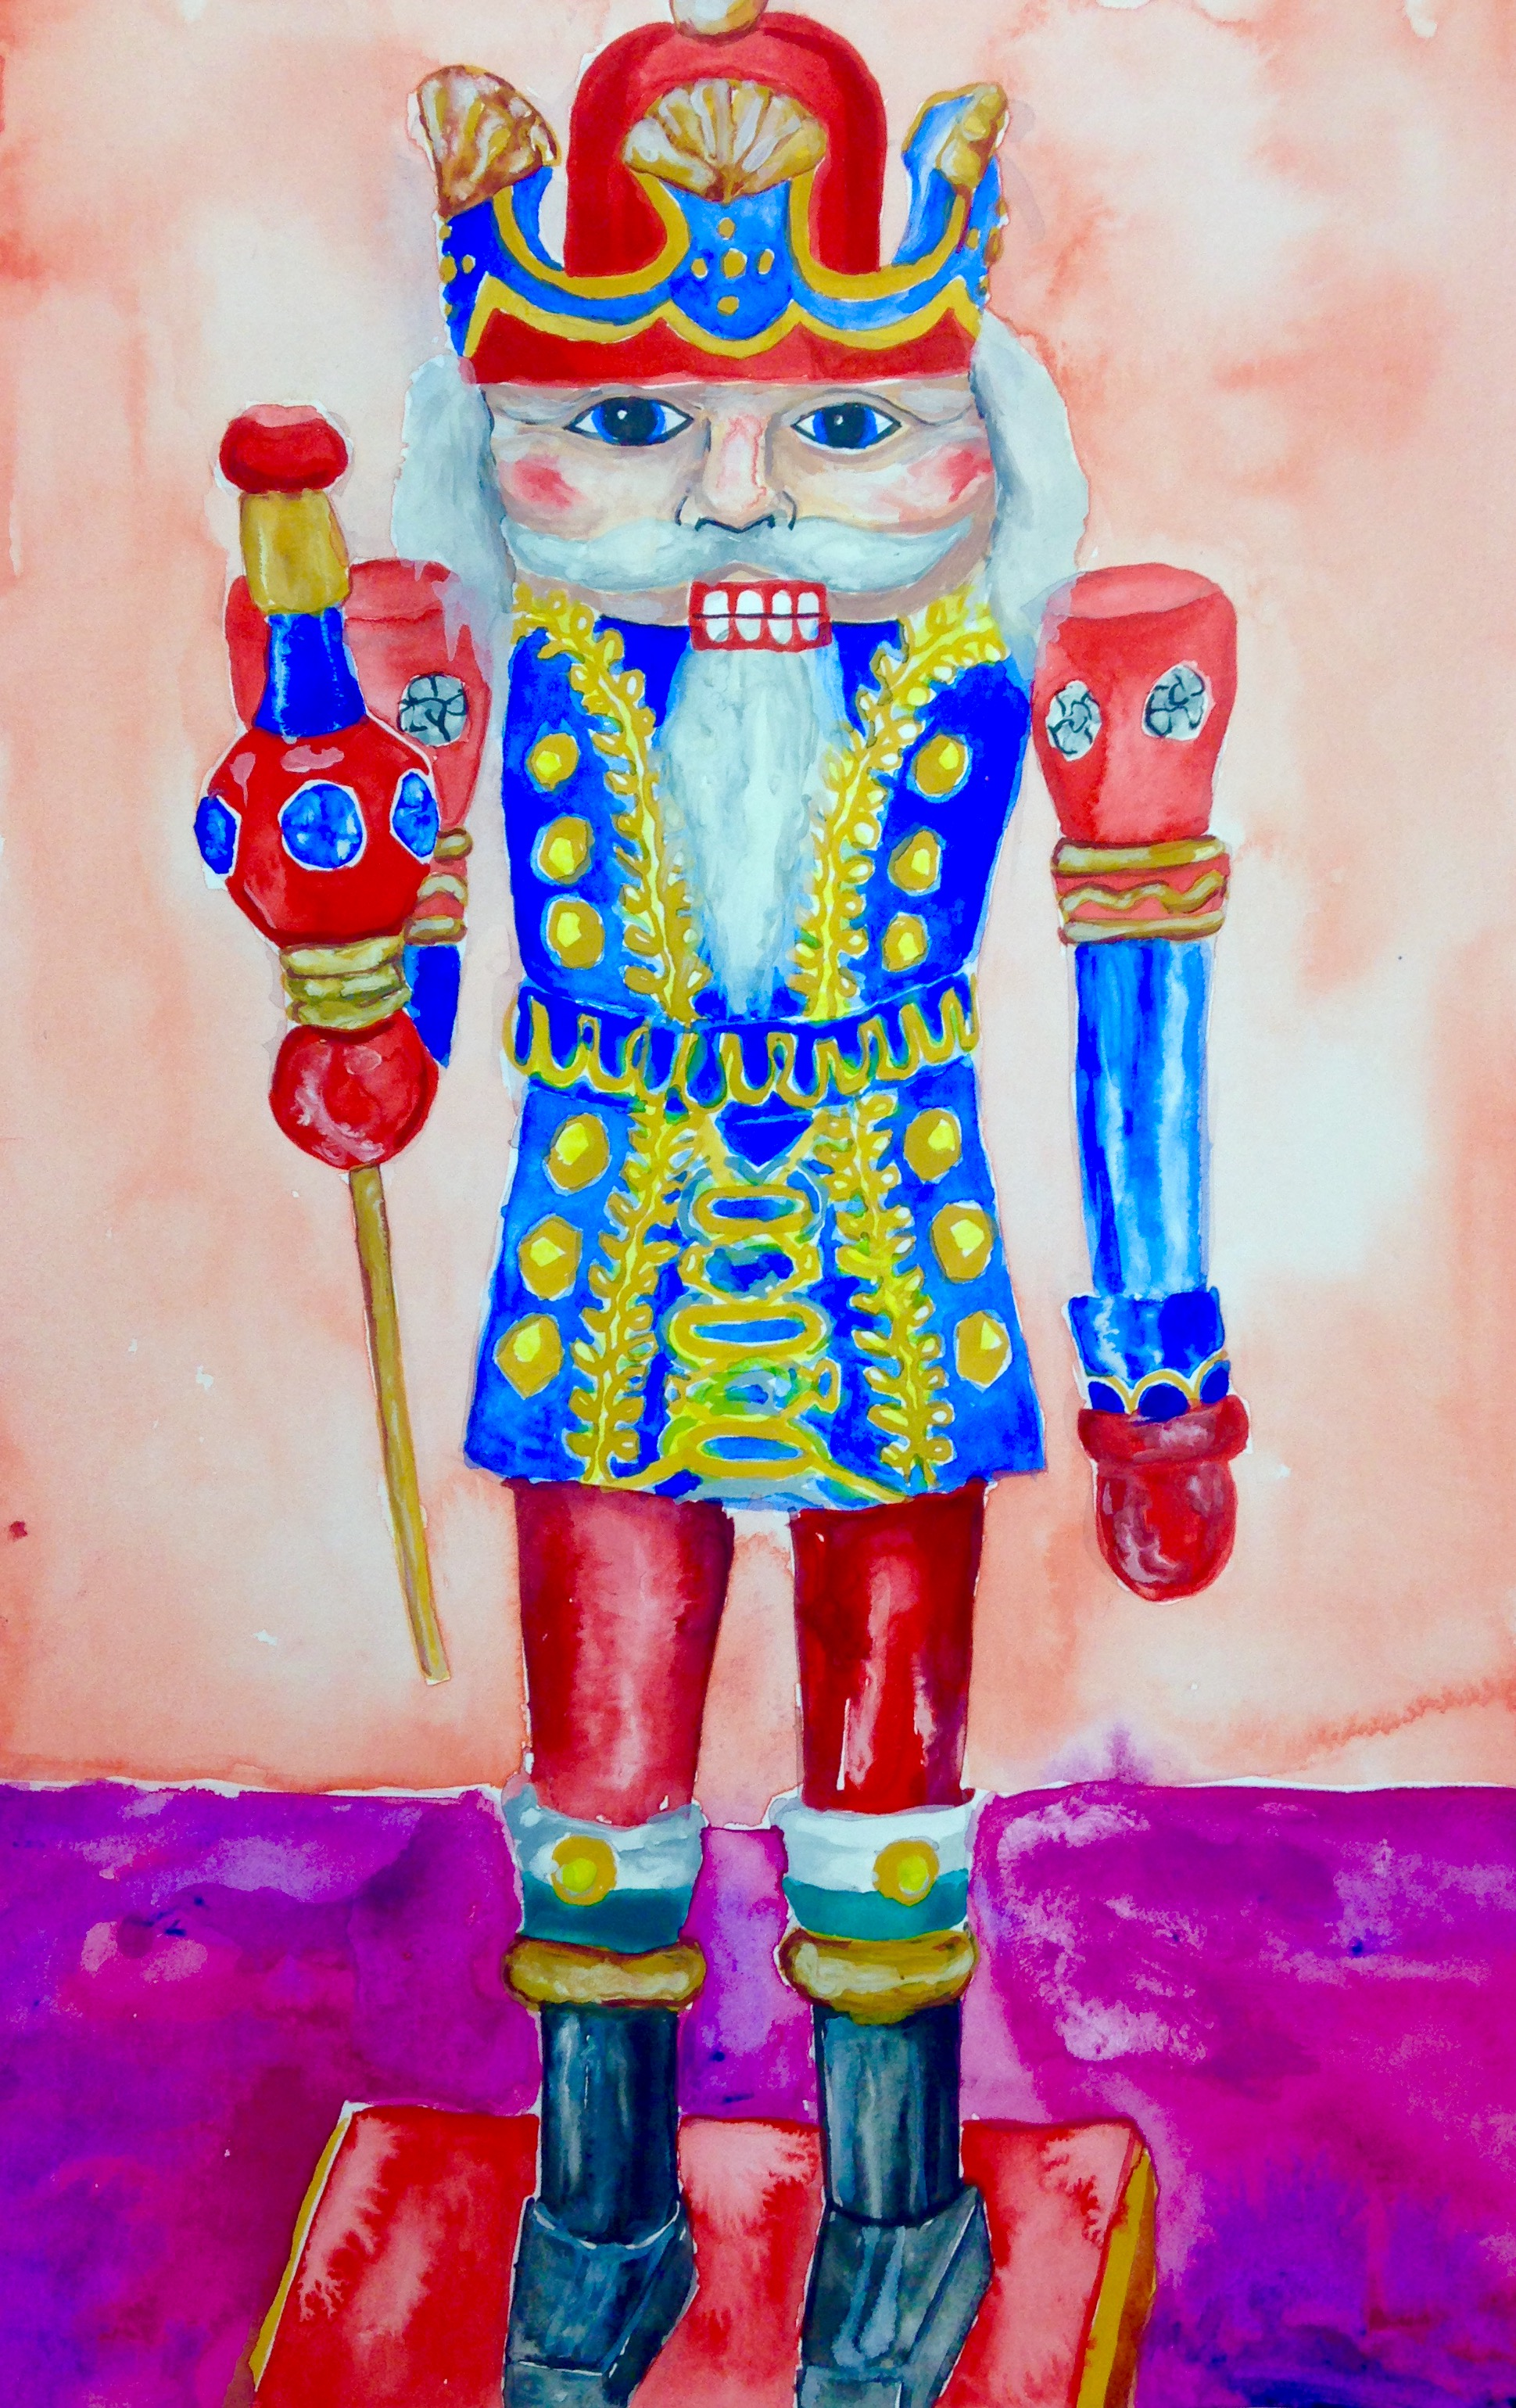 Knight King Nutcracker